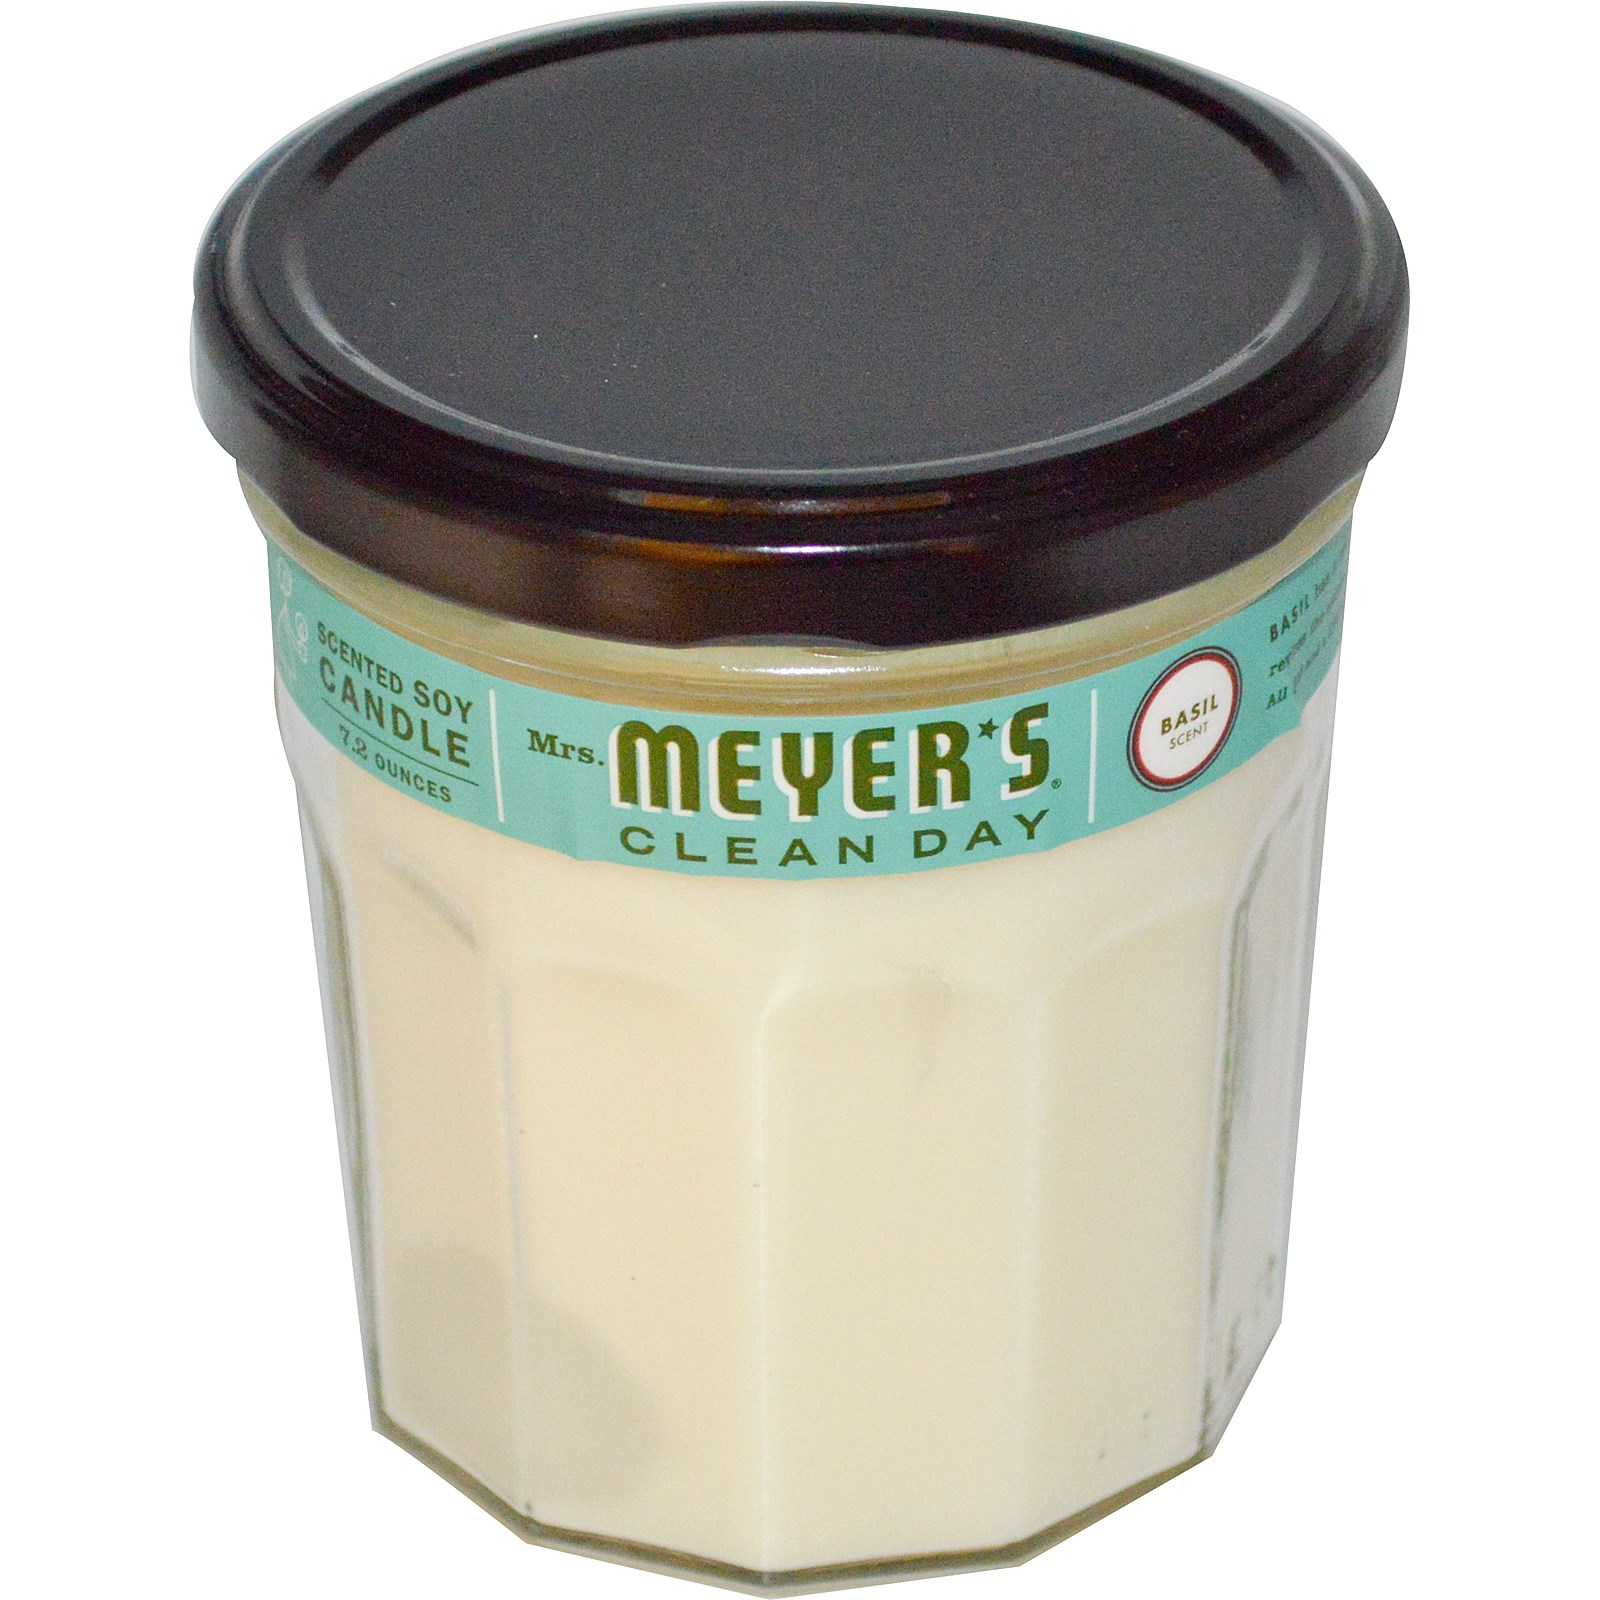 Mrs. Meyers Clean Day, Scented Soy Candle, Basil Scent, 7.2 oz(pack of 1)